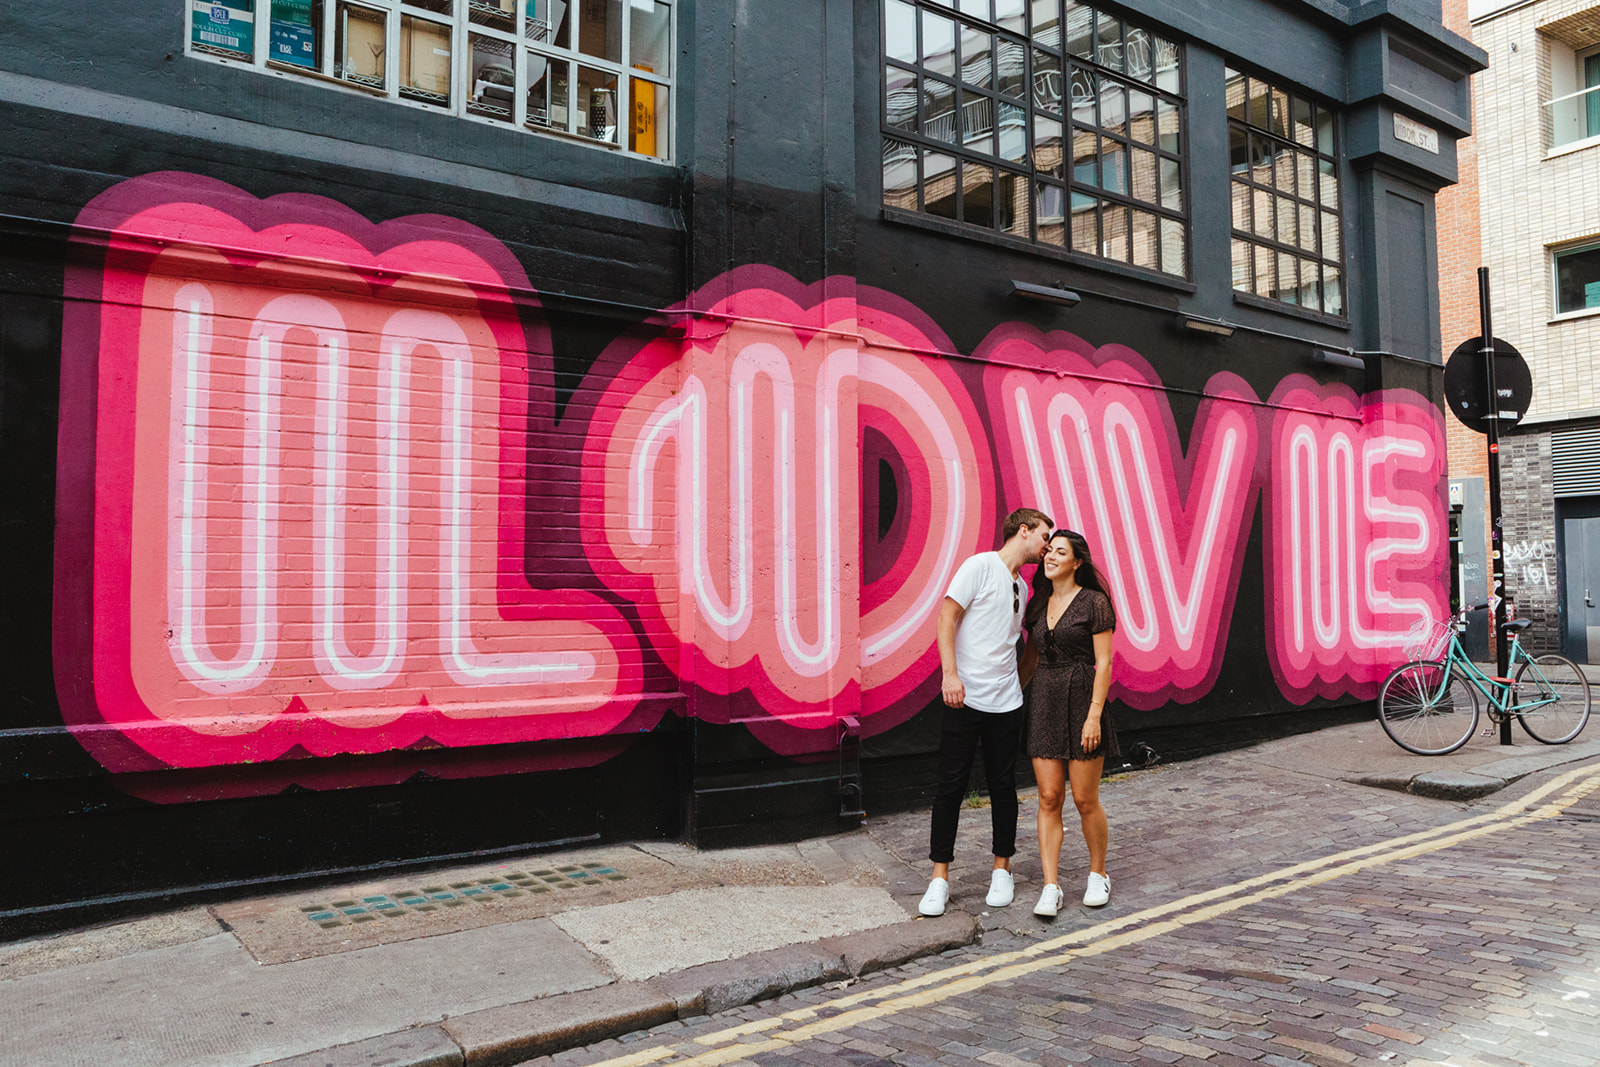 A young couple pose in front of a bright pink graffiti